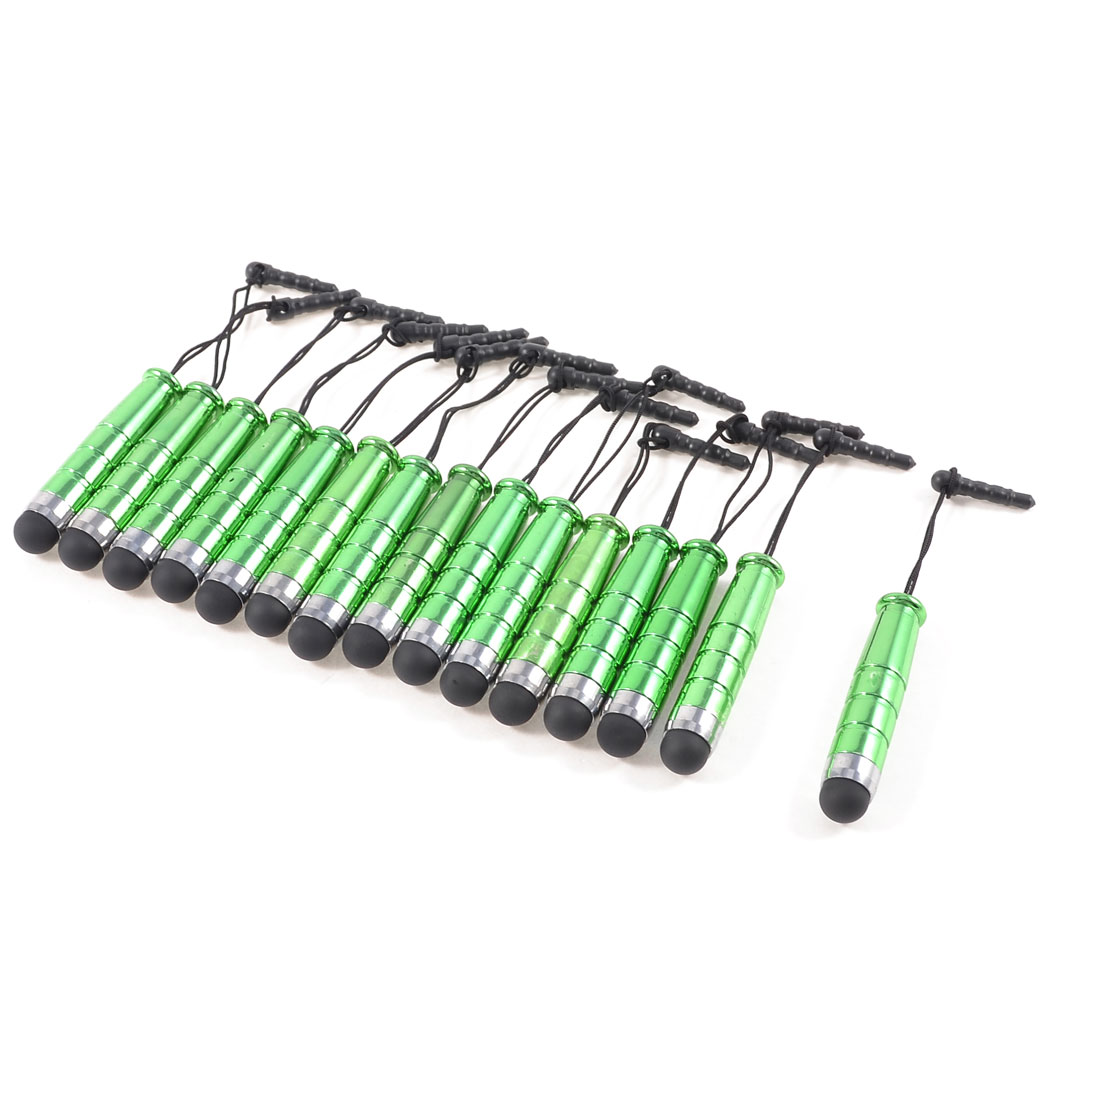 15 Pcs Anti Dust Capacitive Touch Screen Stylus Pen Green for Phone Tablet PC